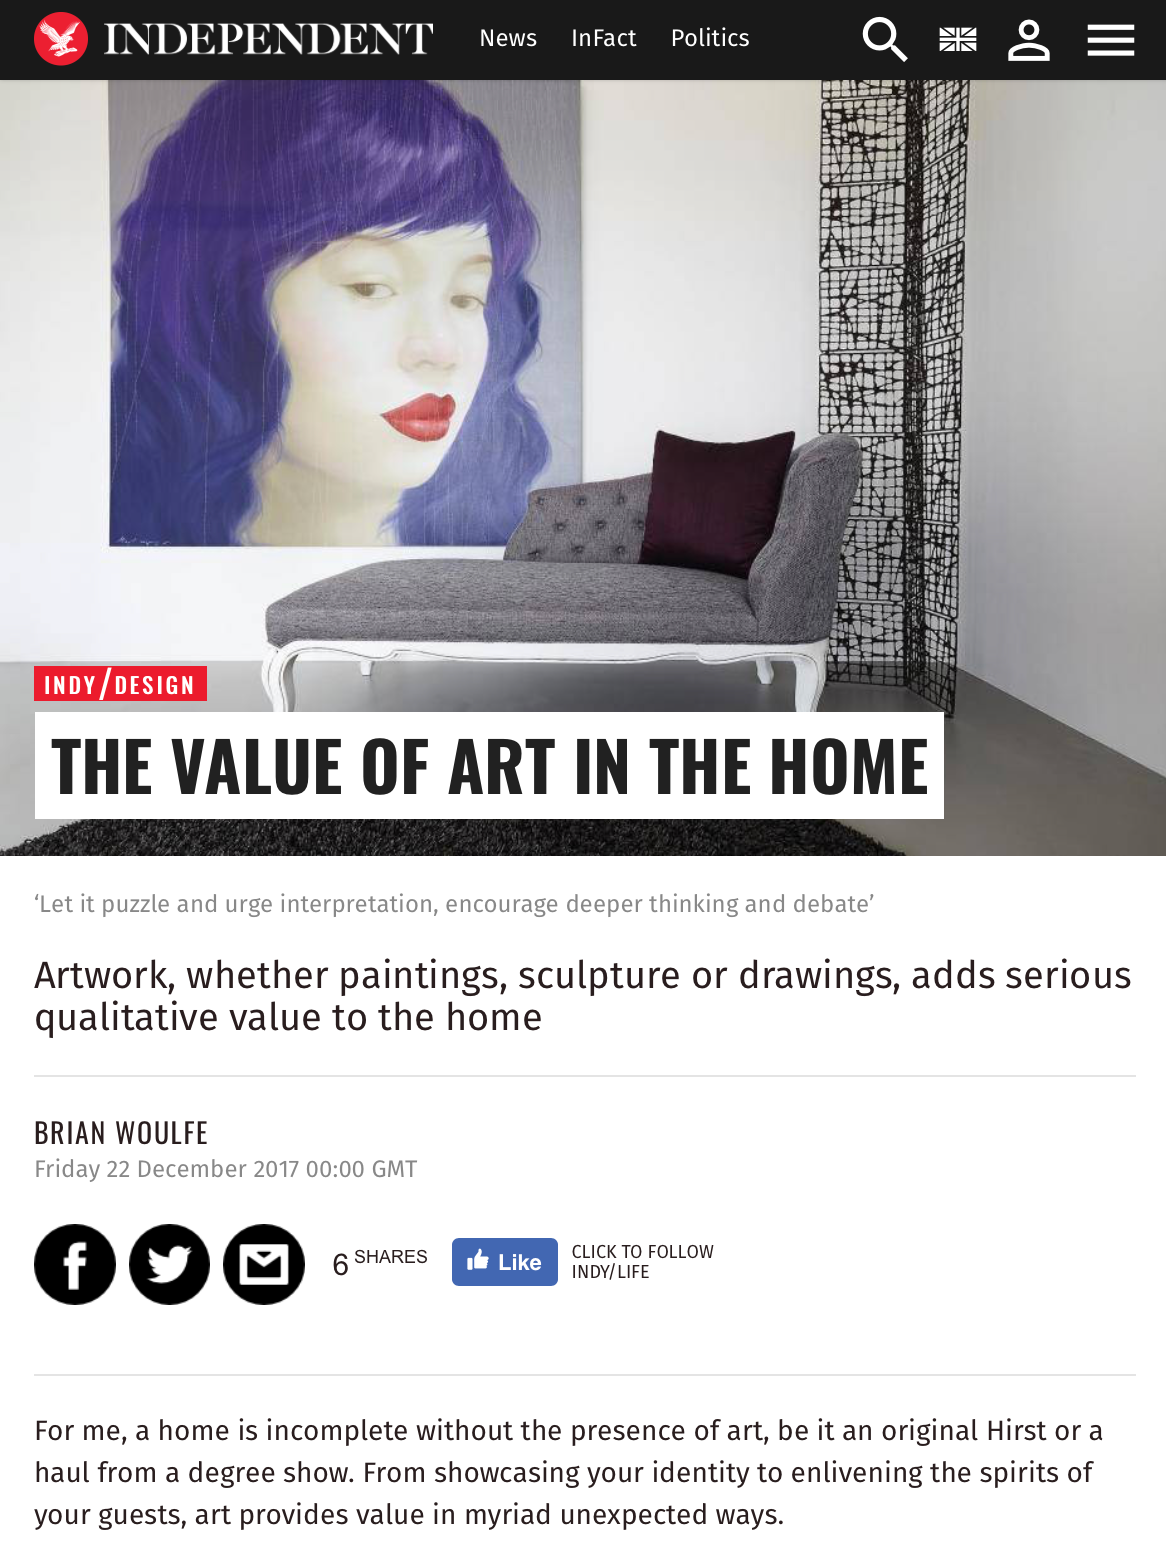 The Independent, Designed by Woulfe, Brian Woulfe, The Value of Art In The Home